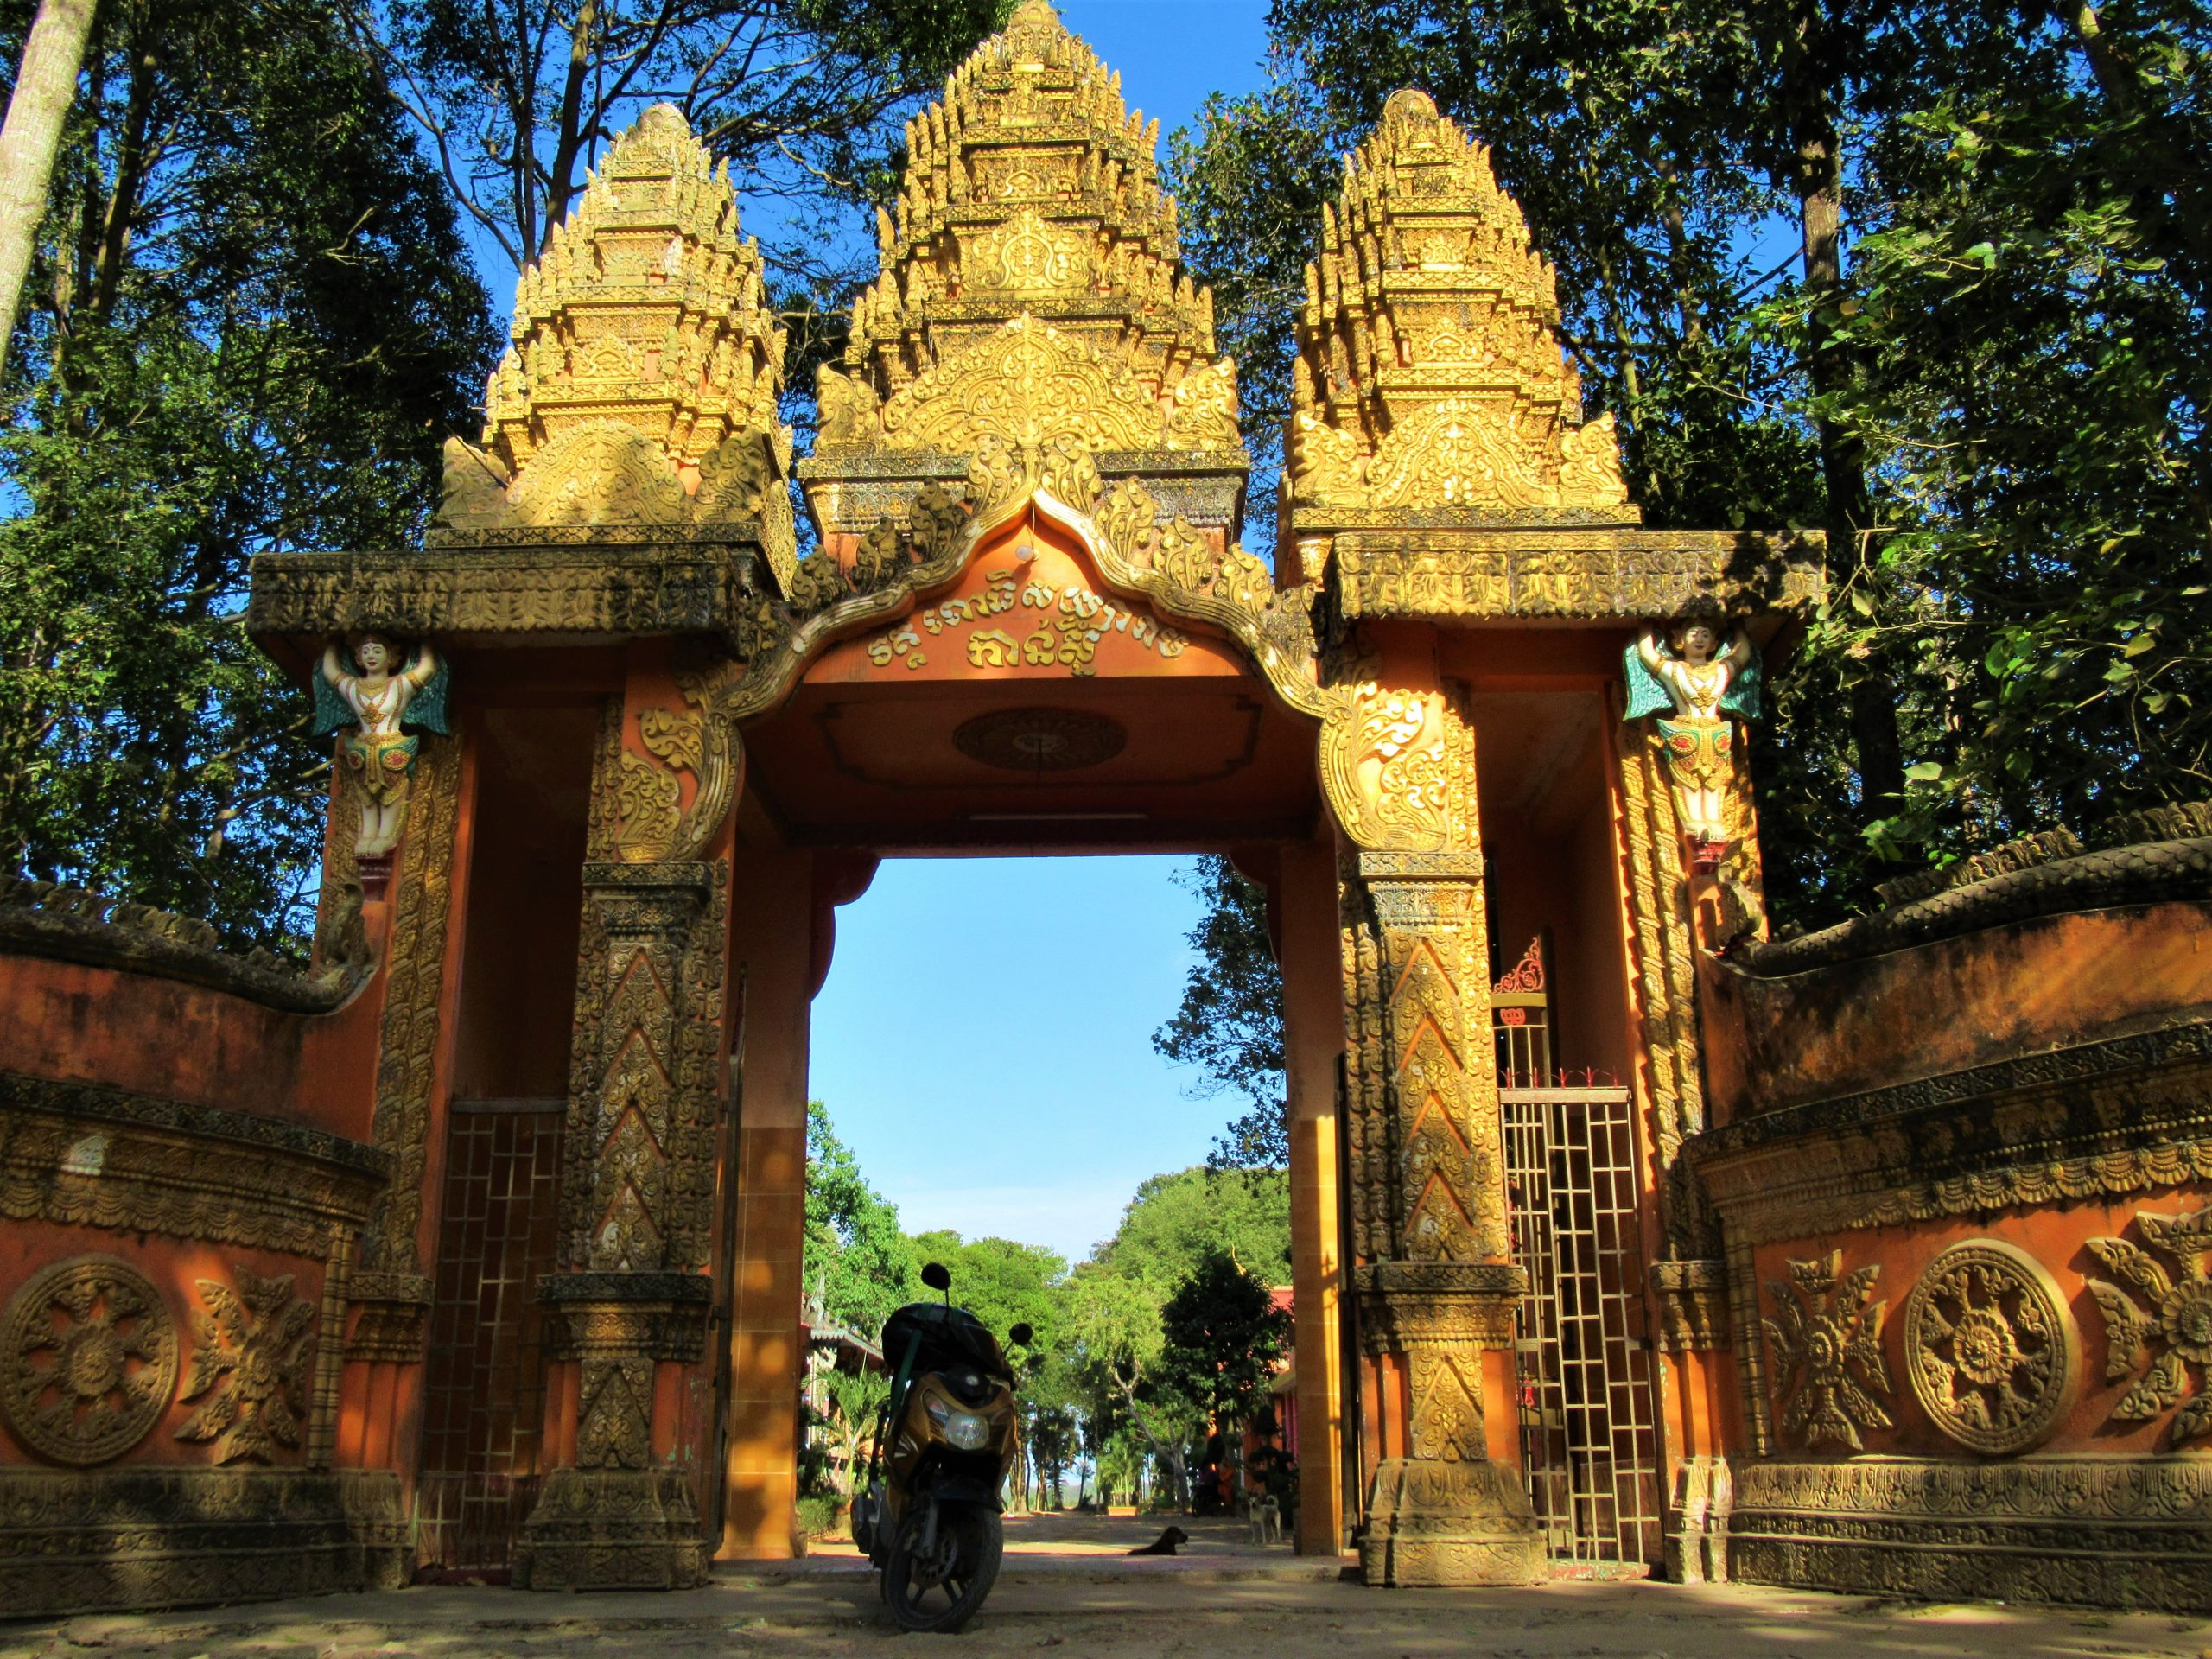 At the entrance to a Khmer temple in Tra Vinh, on the Temple-Hopping Loop, Mekong Delta